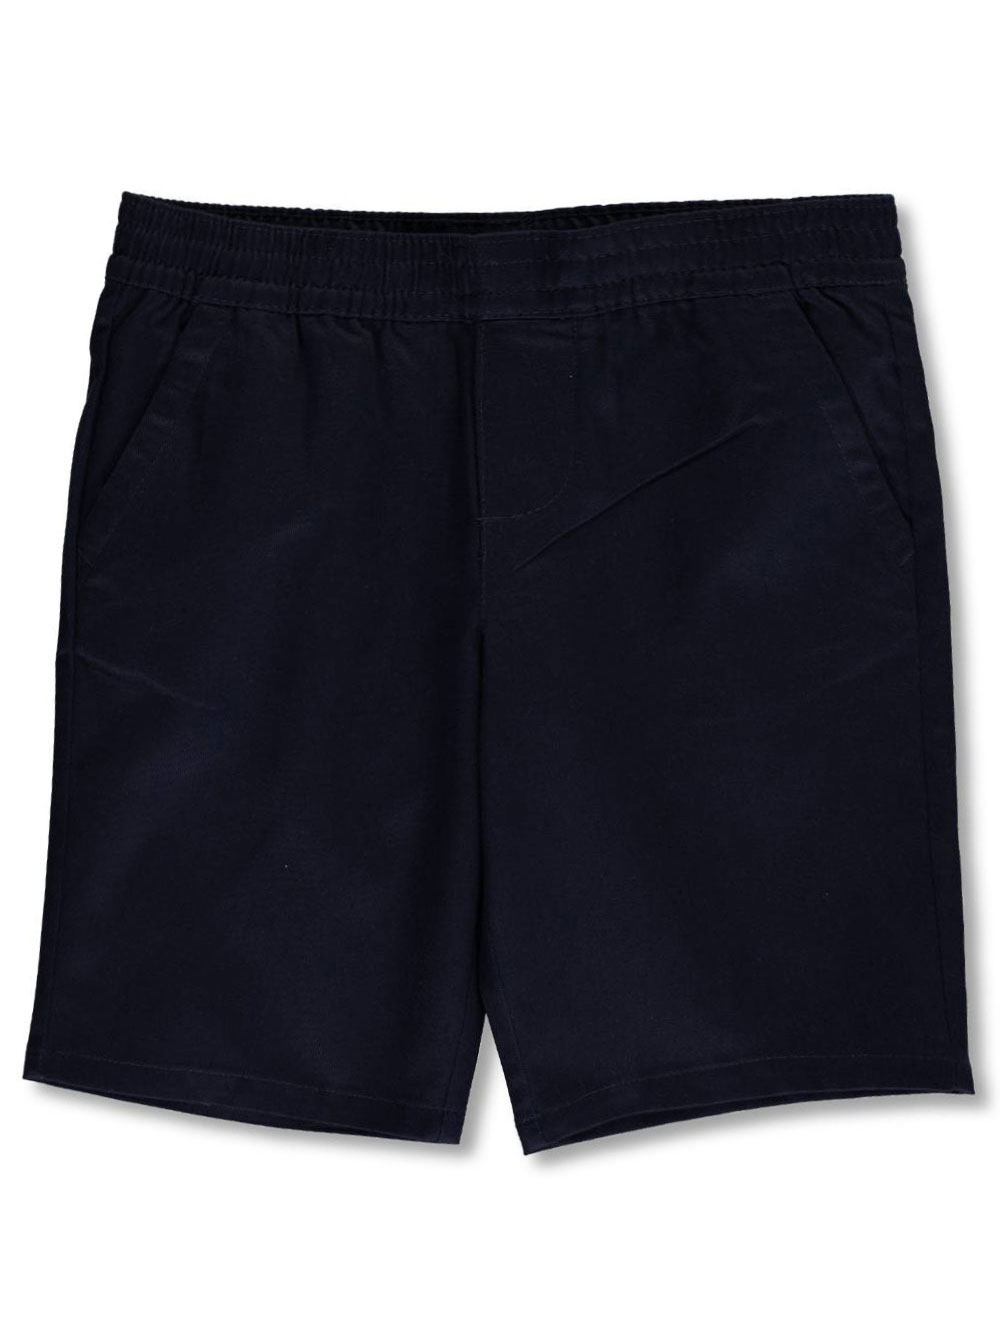 Size 2t Shorts for Boys